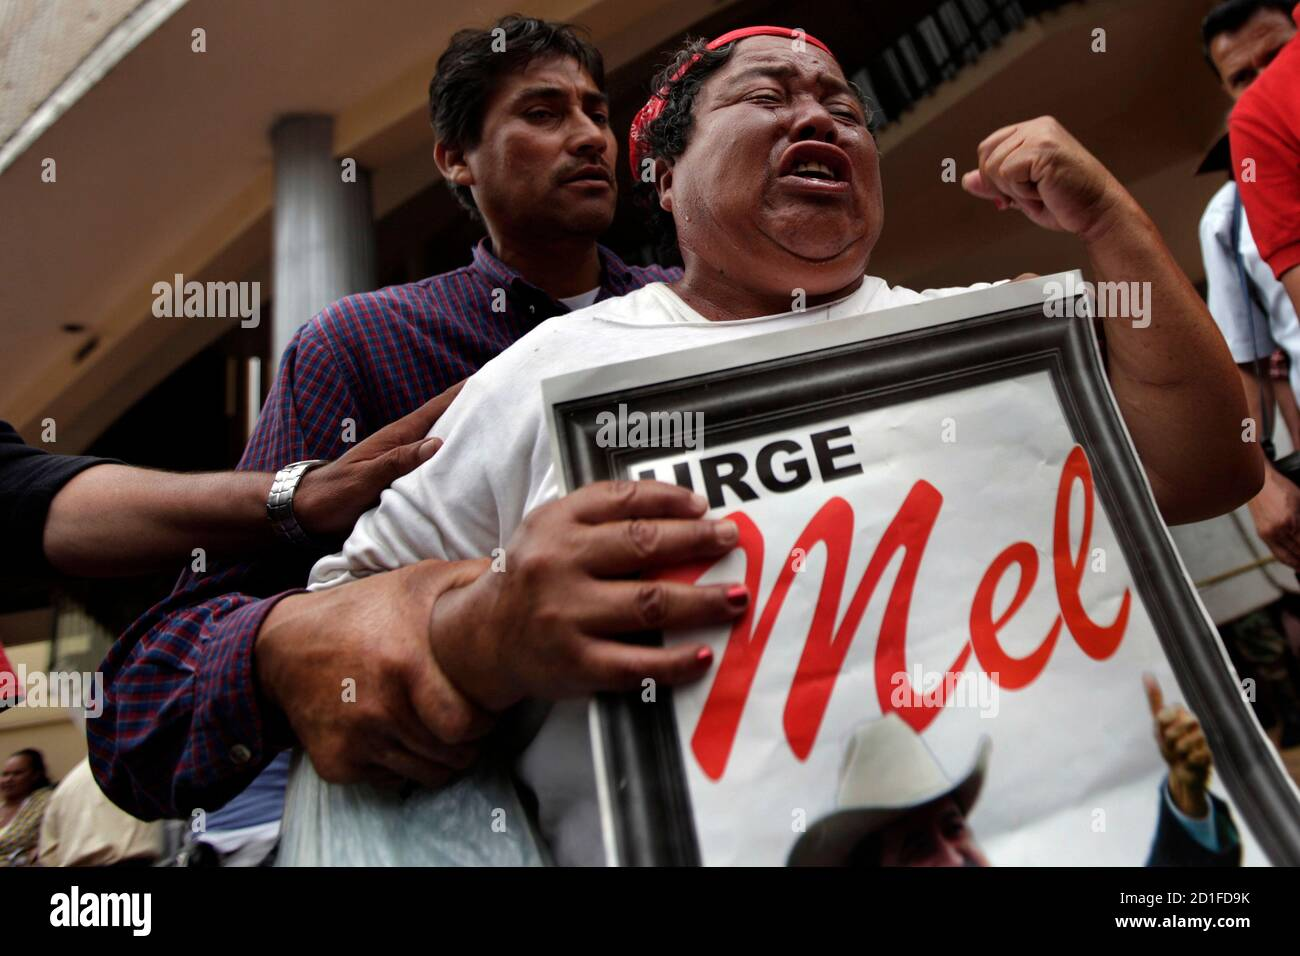 """A supporter of Honduras' ousted president Manuel Zelaya cries during a protest outside National Congress in Tegucigalpa July 15, 2009.The United States urged the rival sides in Honduras' political crisis on Tuesday to give dialogue a chance, but the deposed president is threatening to abandon talks mediated by Costa Rica if he is not reinstated quickly. A second round of talks is set for Saturday. The poster reads, """"Urge Mel"""". REUTERS/Edgard Garrido (HONDURAS) Stock Photo"""